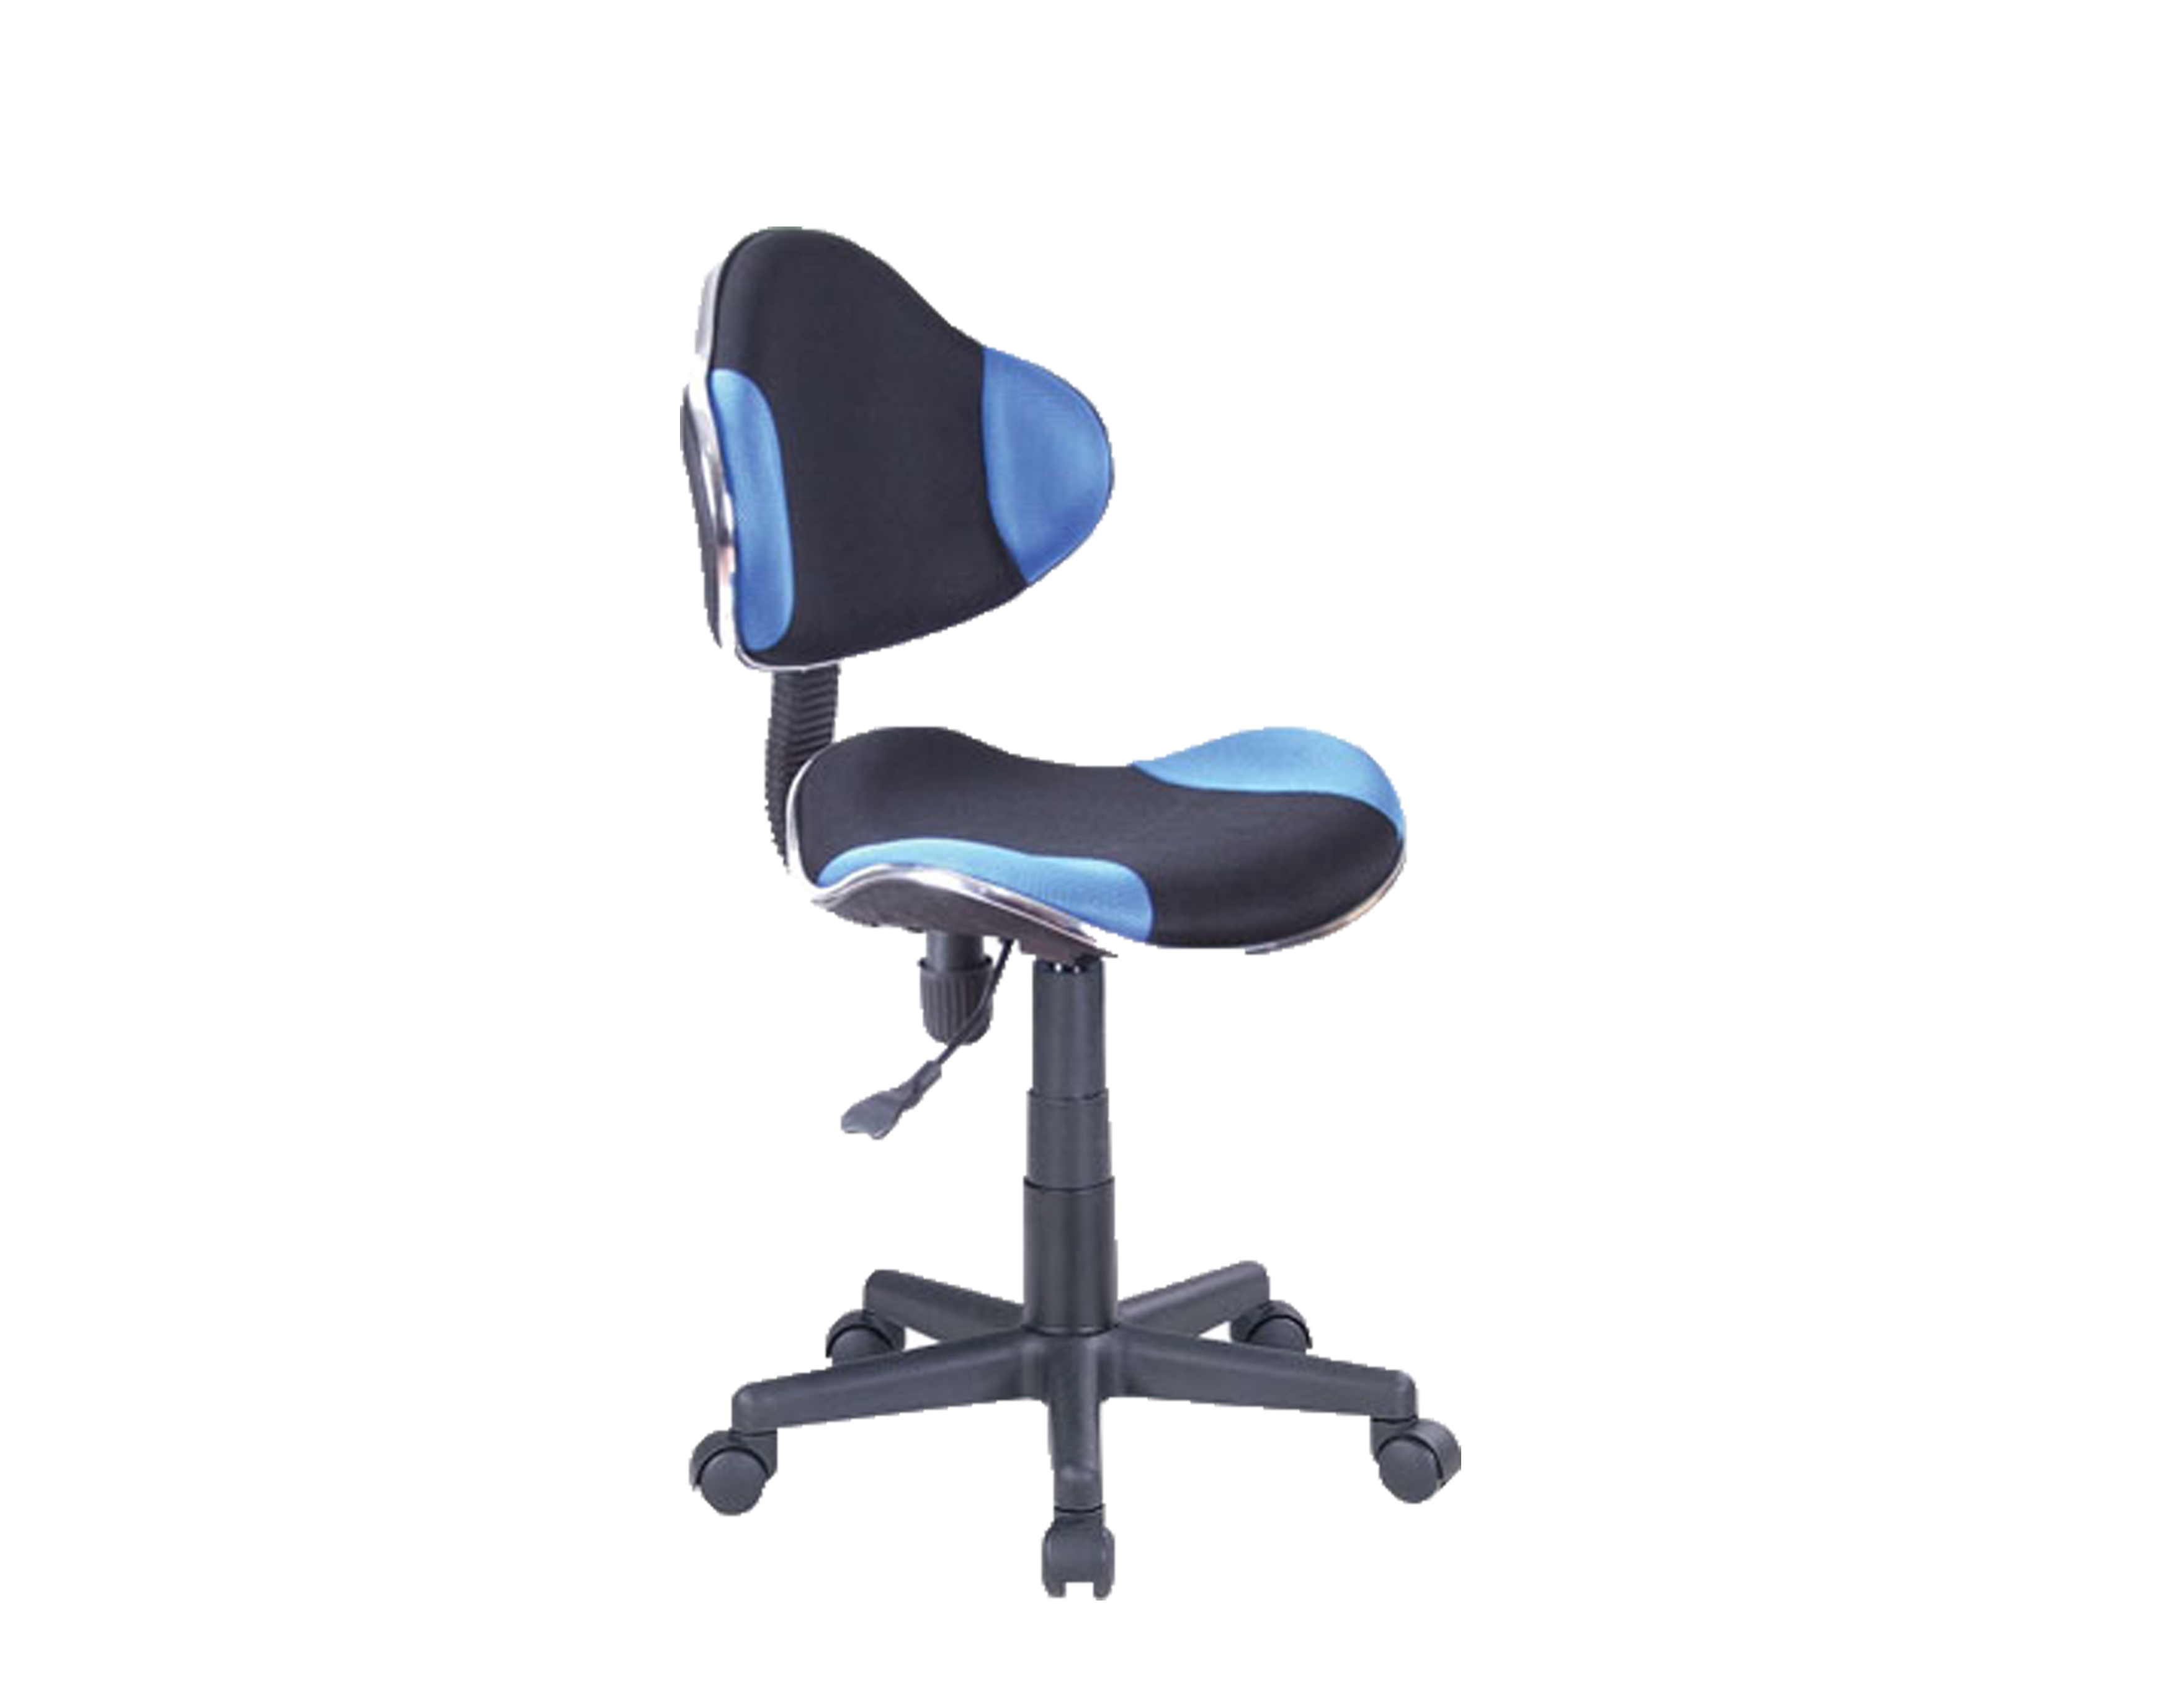 Computer Desk Office Chair w Blue Mesh Fabric - OC-G2B-BL